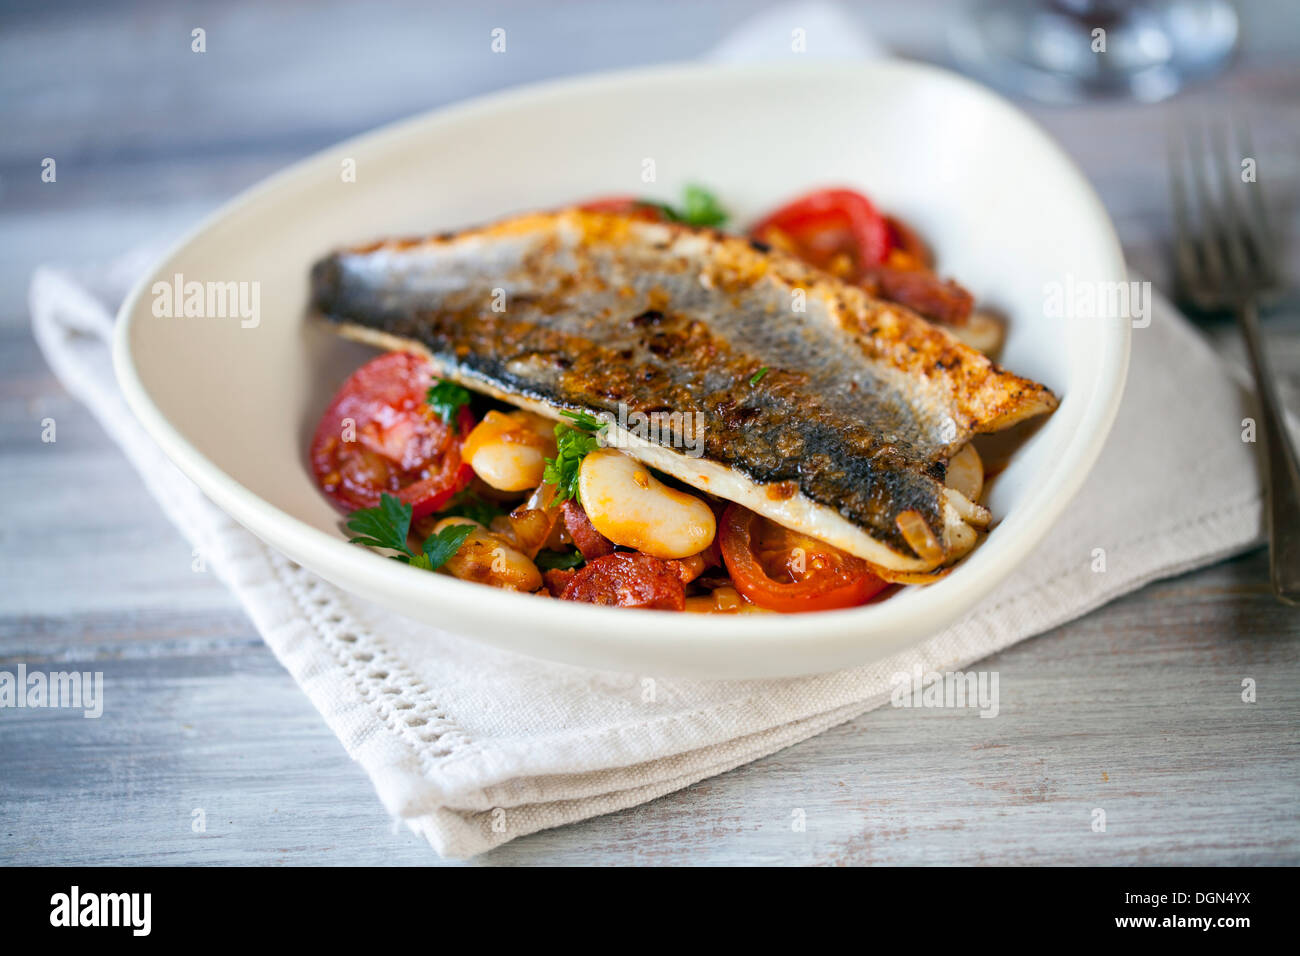 Sea bass fillet with butter bean salad - Stock Image